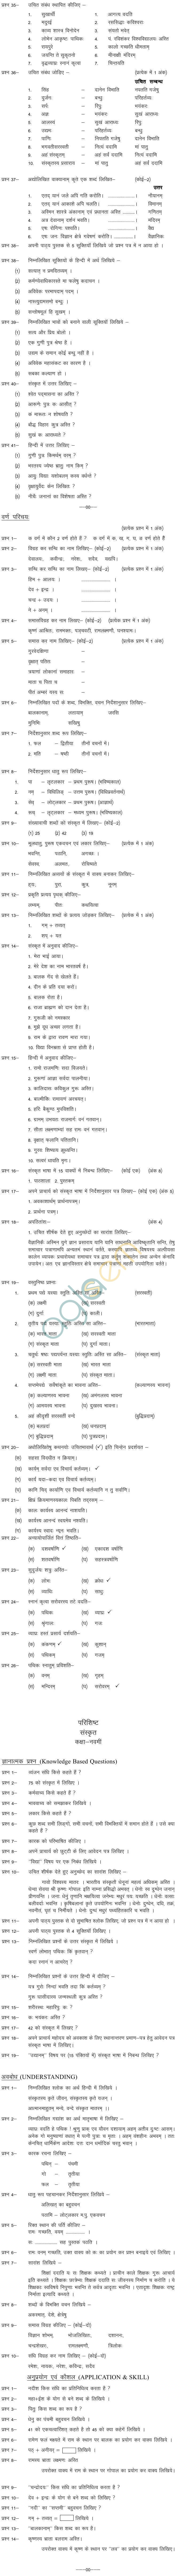 Chhattisgarh Board Class 09 Question Bank - Sanskrit